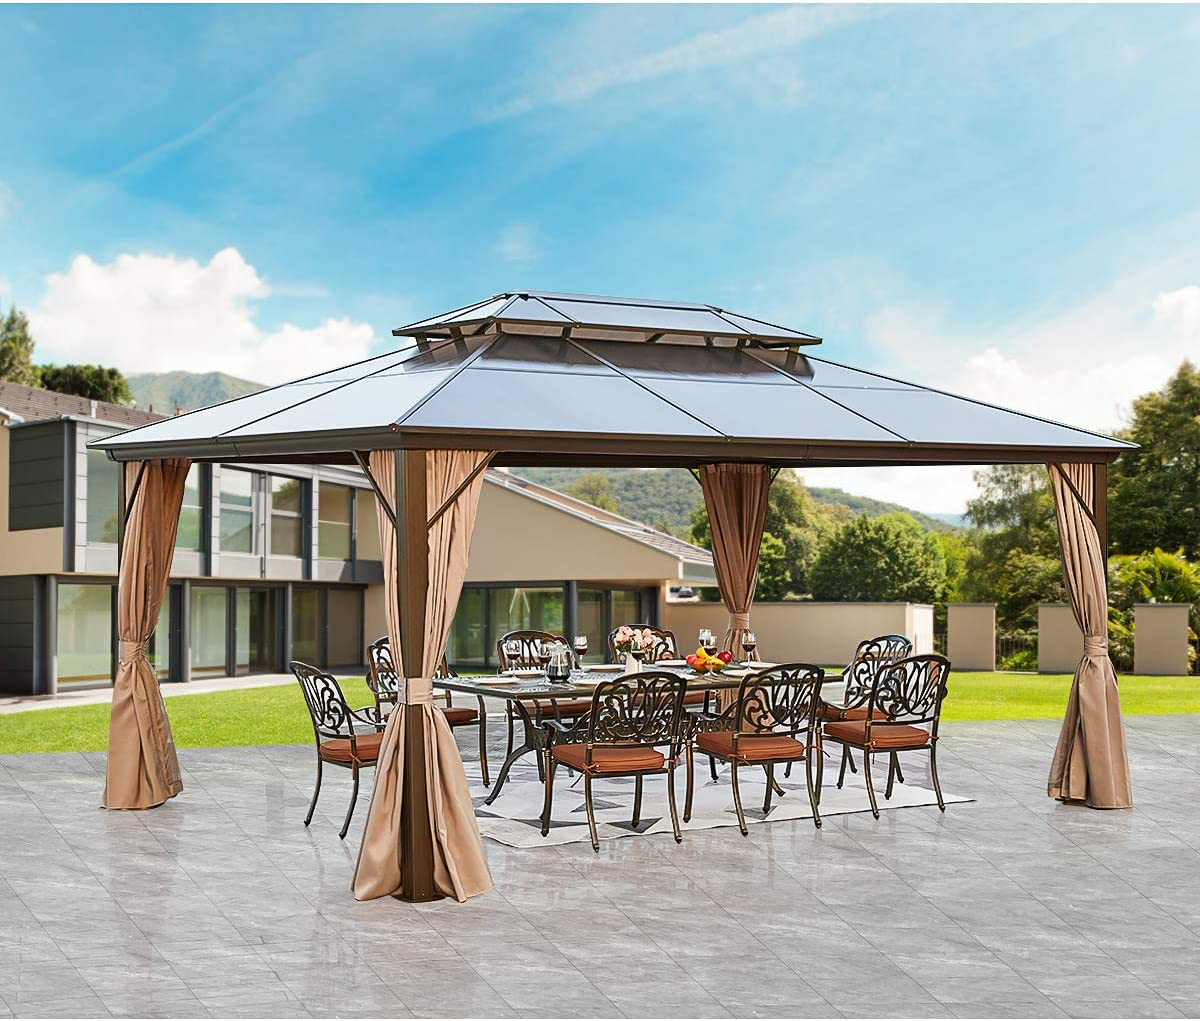 MELLCOM 12'x16' Portland Mall Courier shipping free shipping Outdoor Polycarbonate Roof Gazebo Hardtop Double